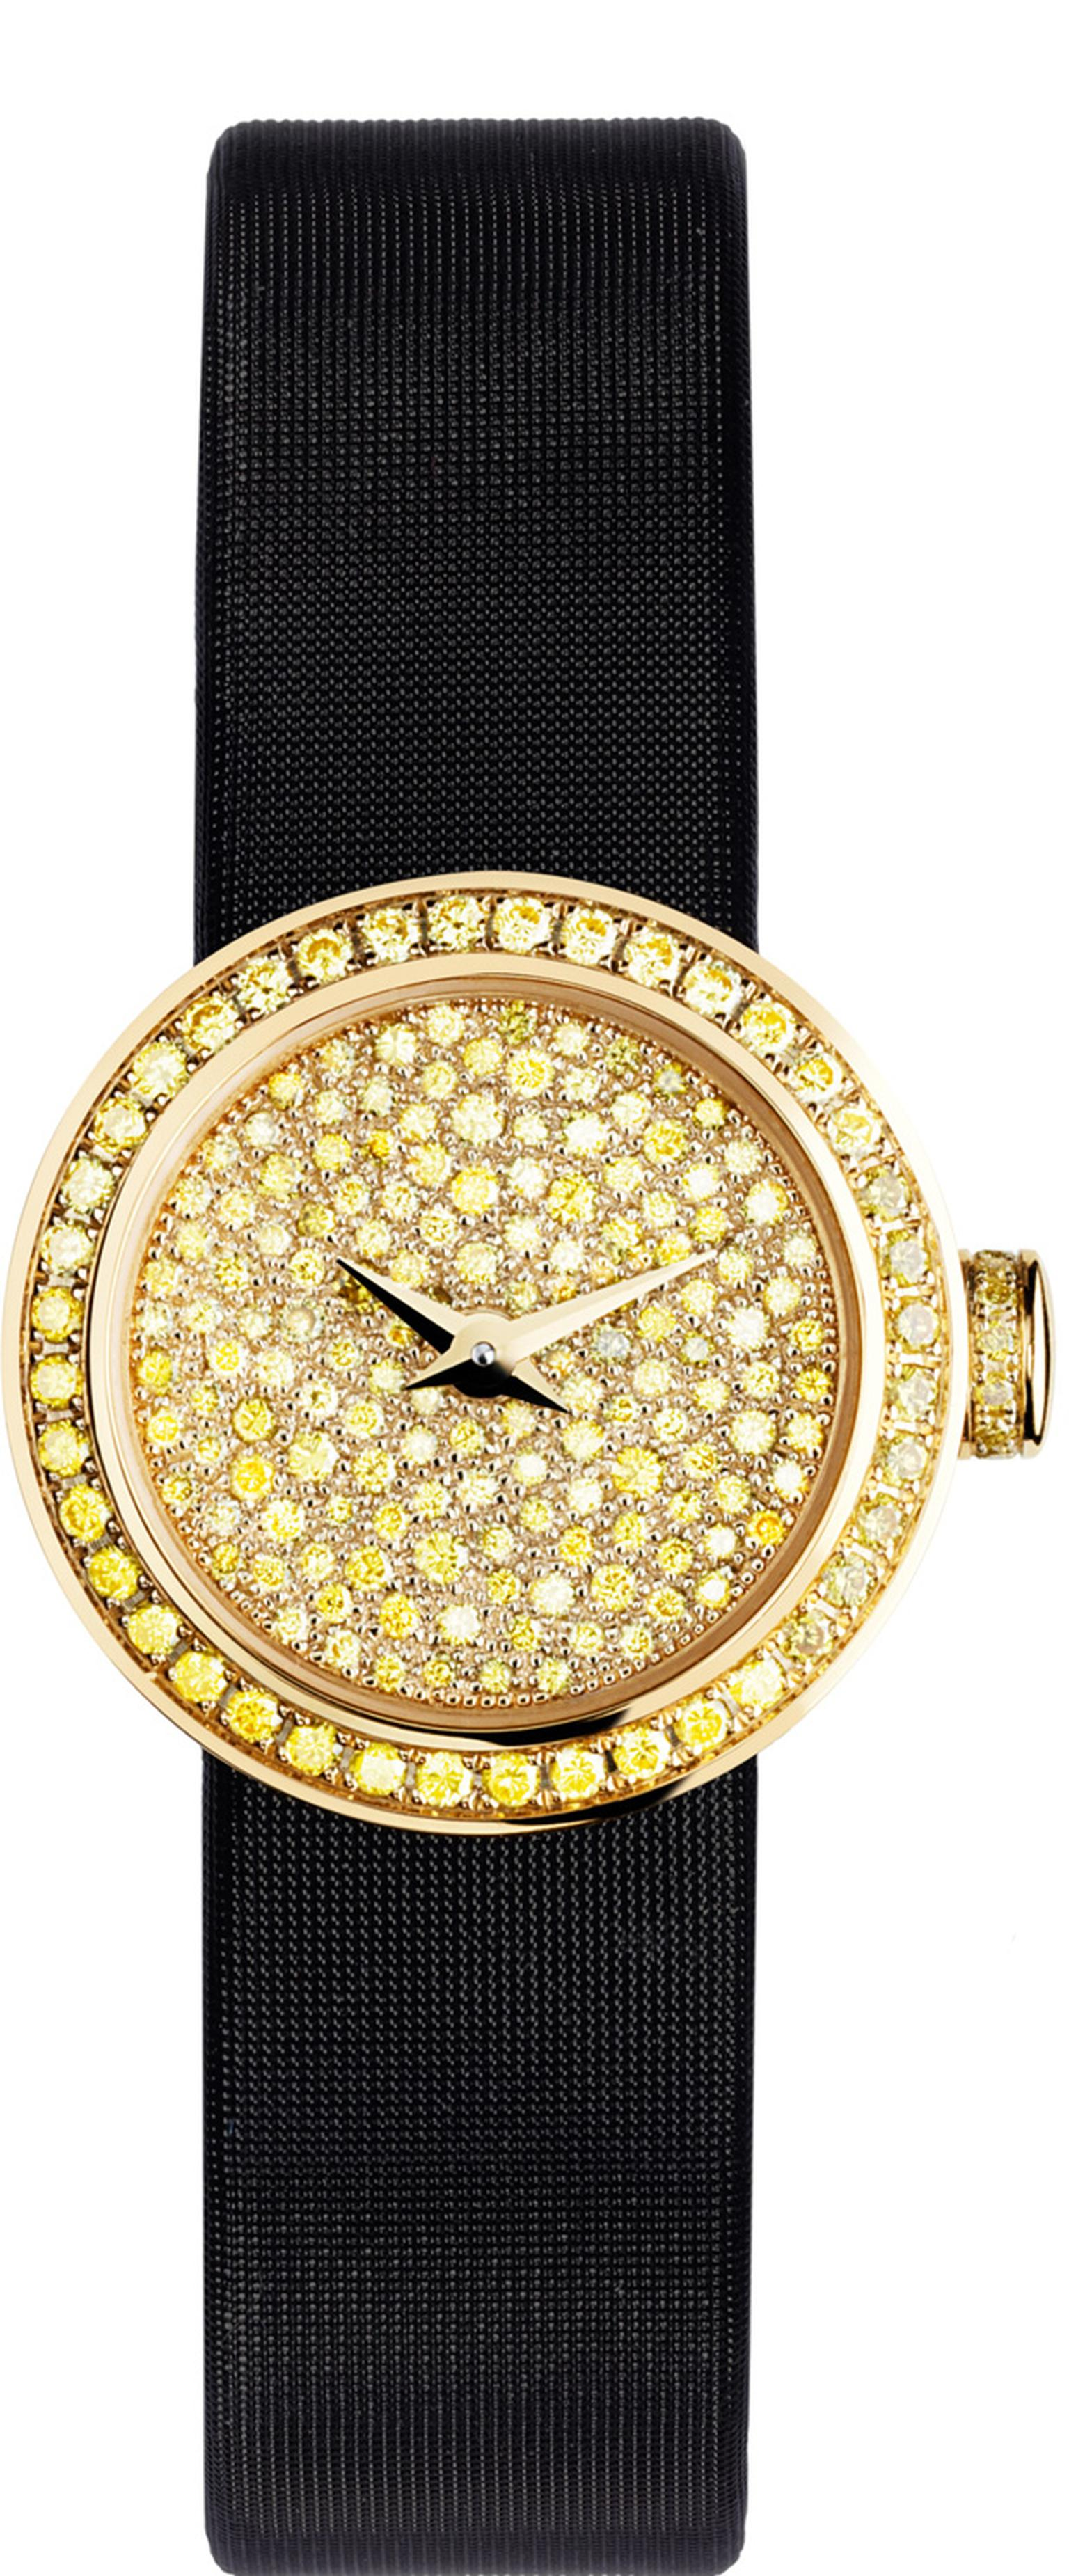 La Mini D de Dior watch in yellow diamonds